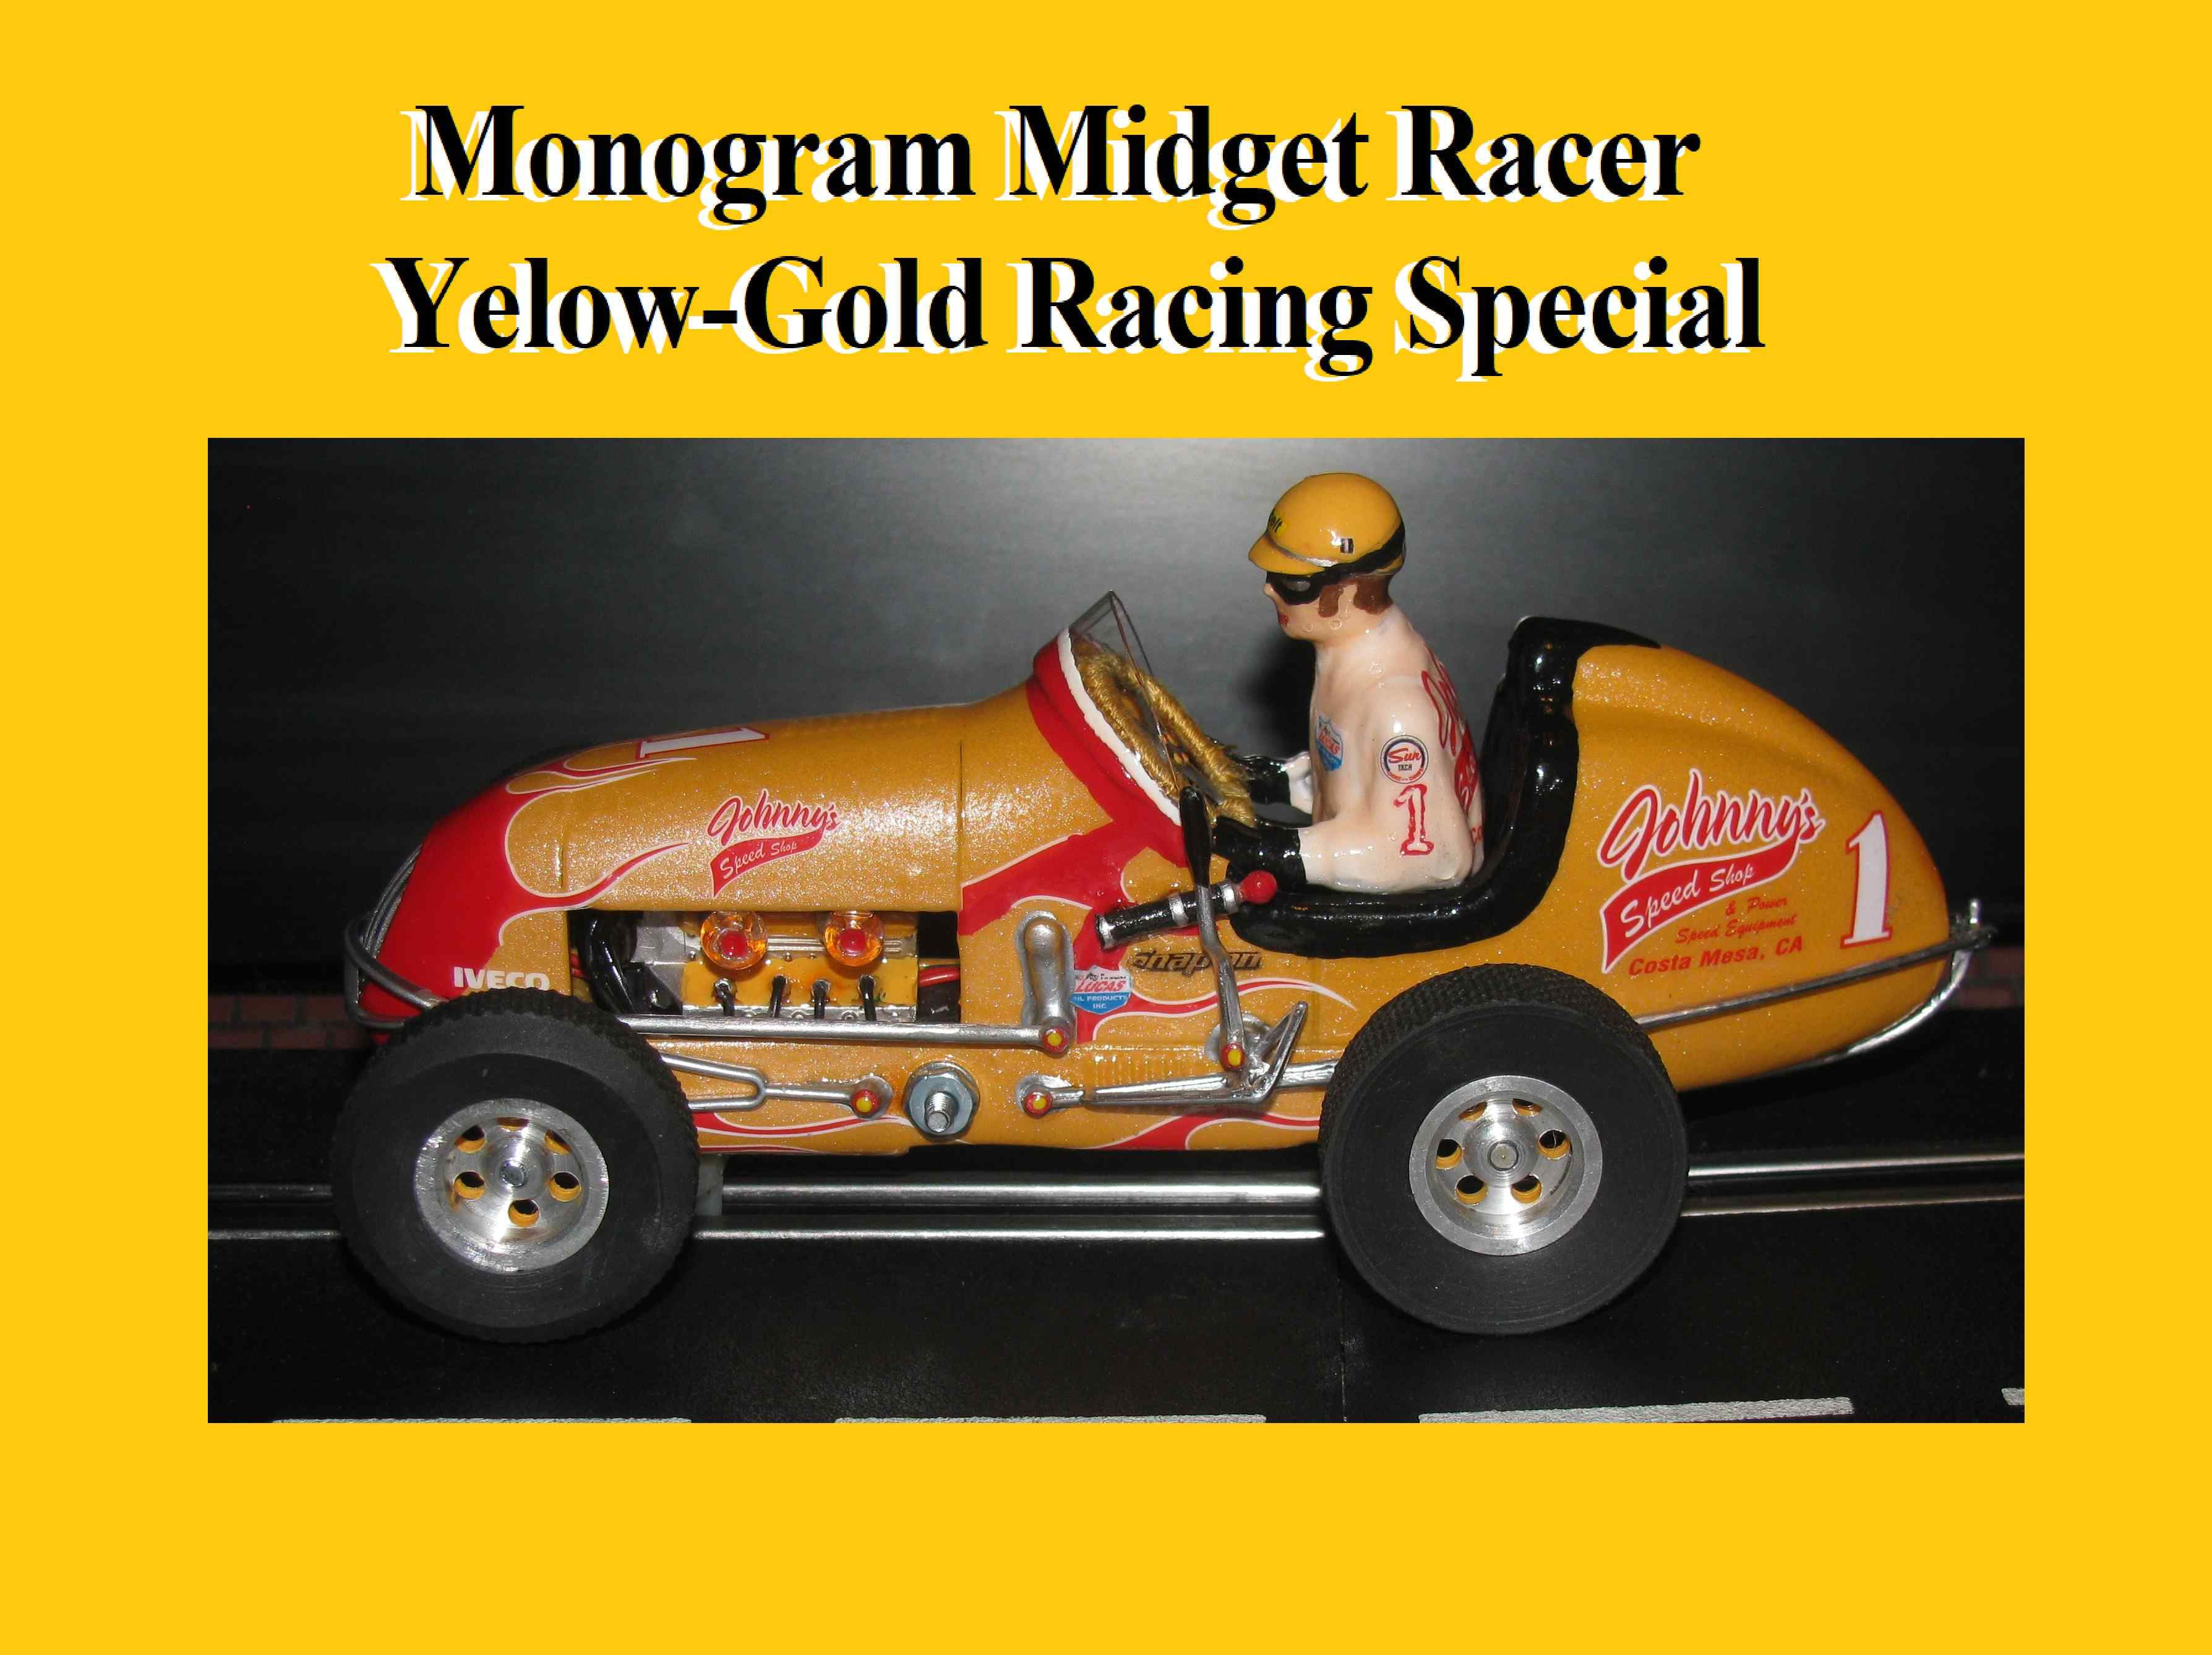 * SOLD * * SALE * * FOR CHARLES E. ONLY * Monogram Midget Racer Yelow-Gold Racing Special Slot Car 1/24 Scale (Revell Style Yellow-Gold Pearl Custom)